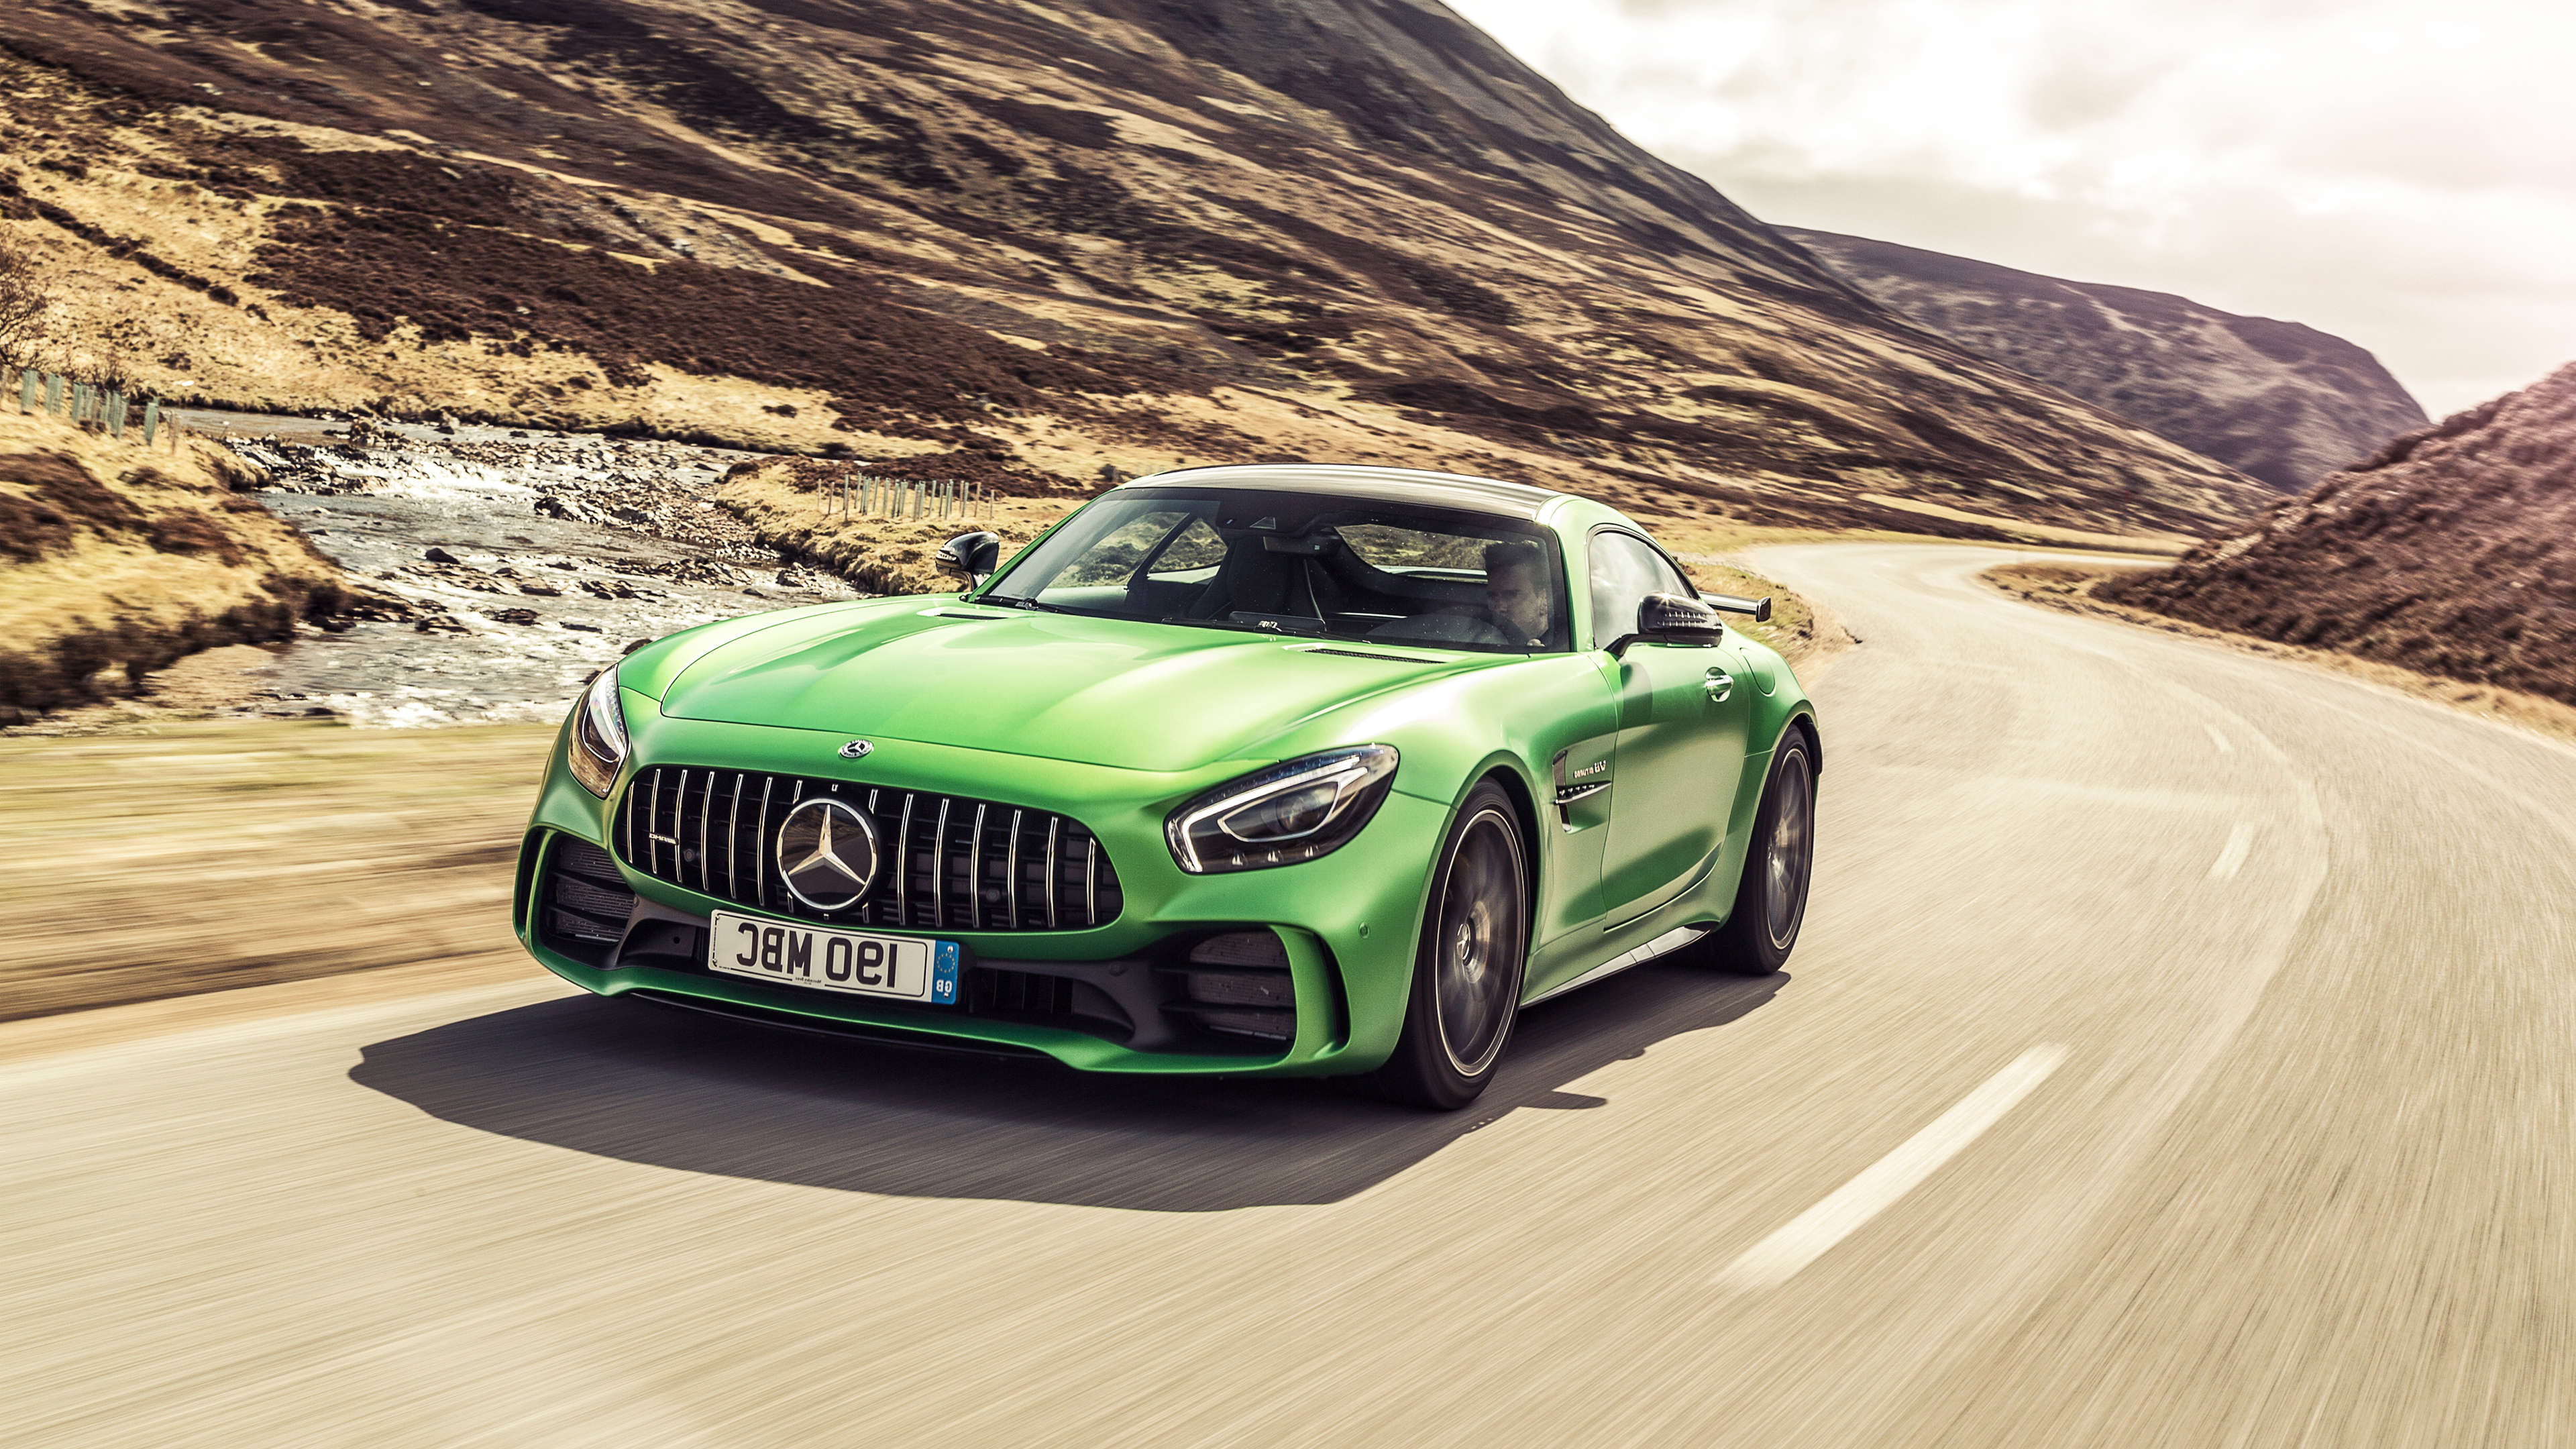 Mercedes AMG GT 4K Ultra HD Wallpaper   Full HD Pictures